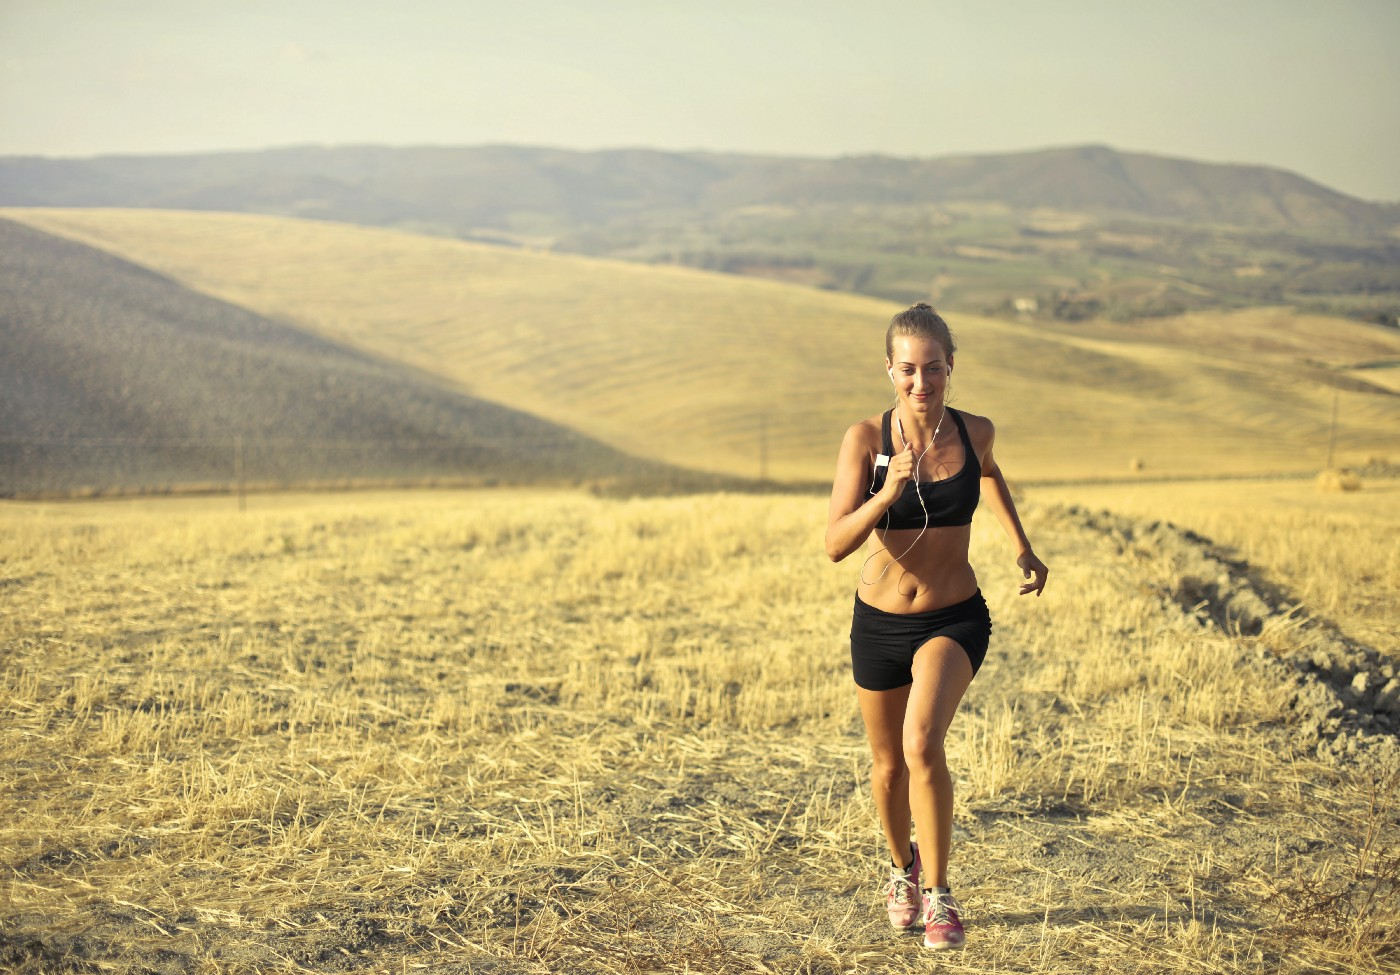 woman running in grassy fields on a sunny day